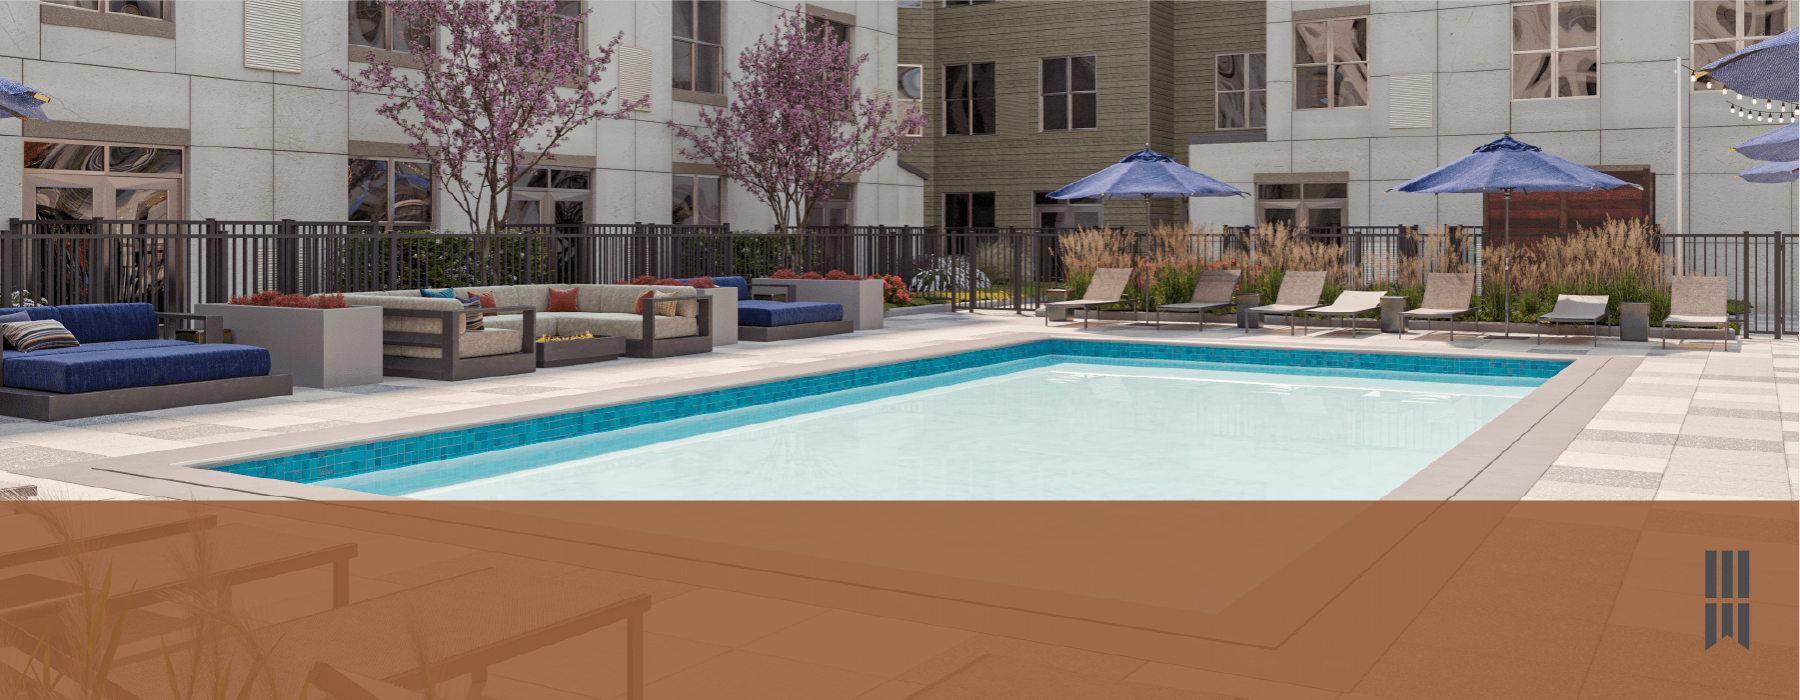 spacious swimming pool with ample reclining seats, closeness to property & lush landscaping